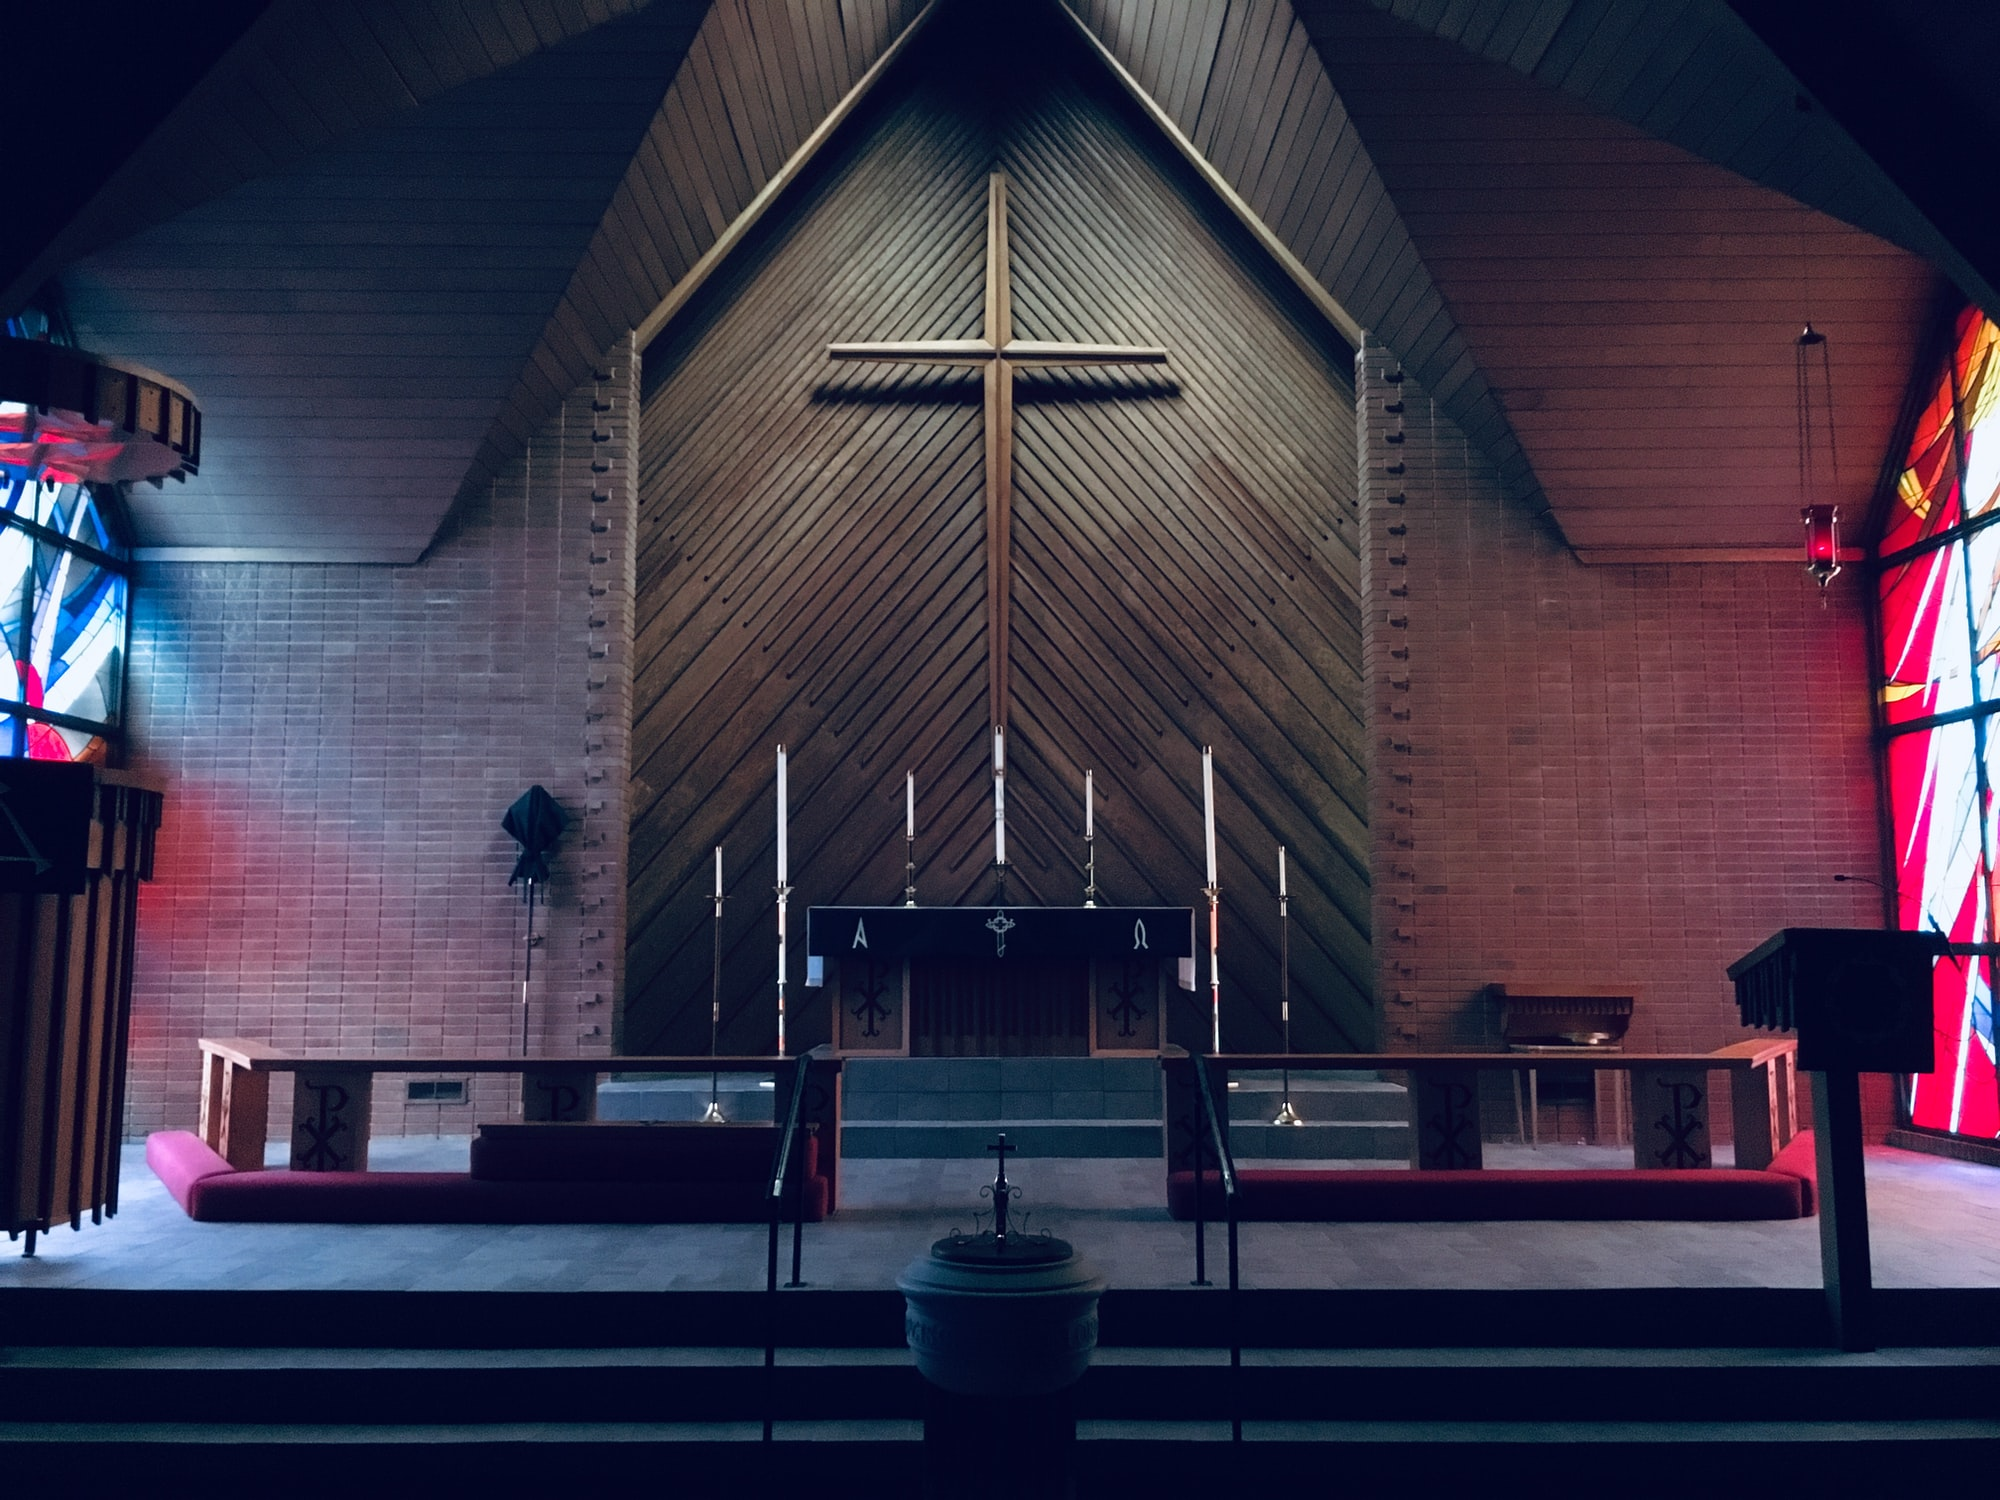 The Importance and Danger of Ritual and Liturgy